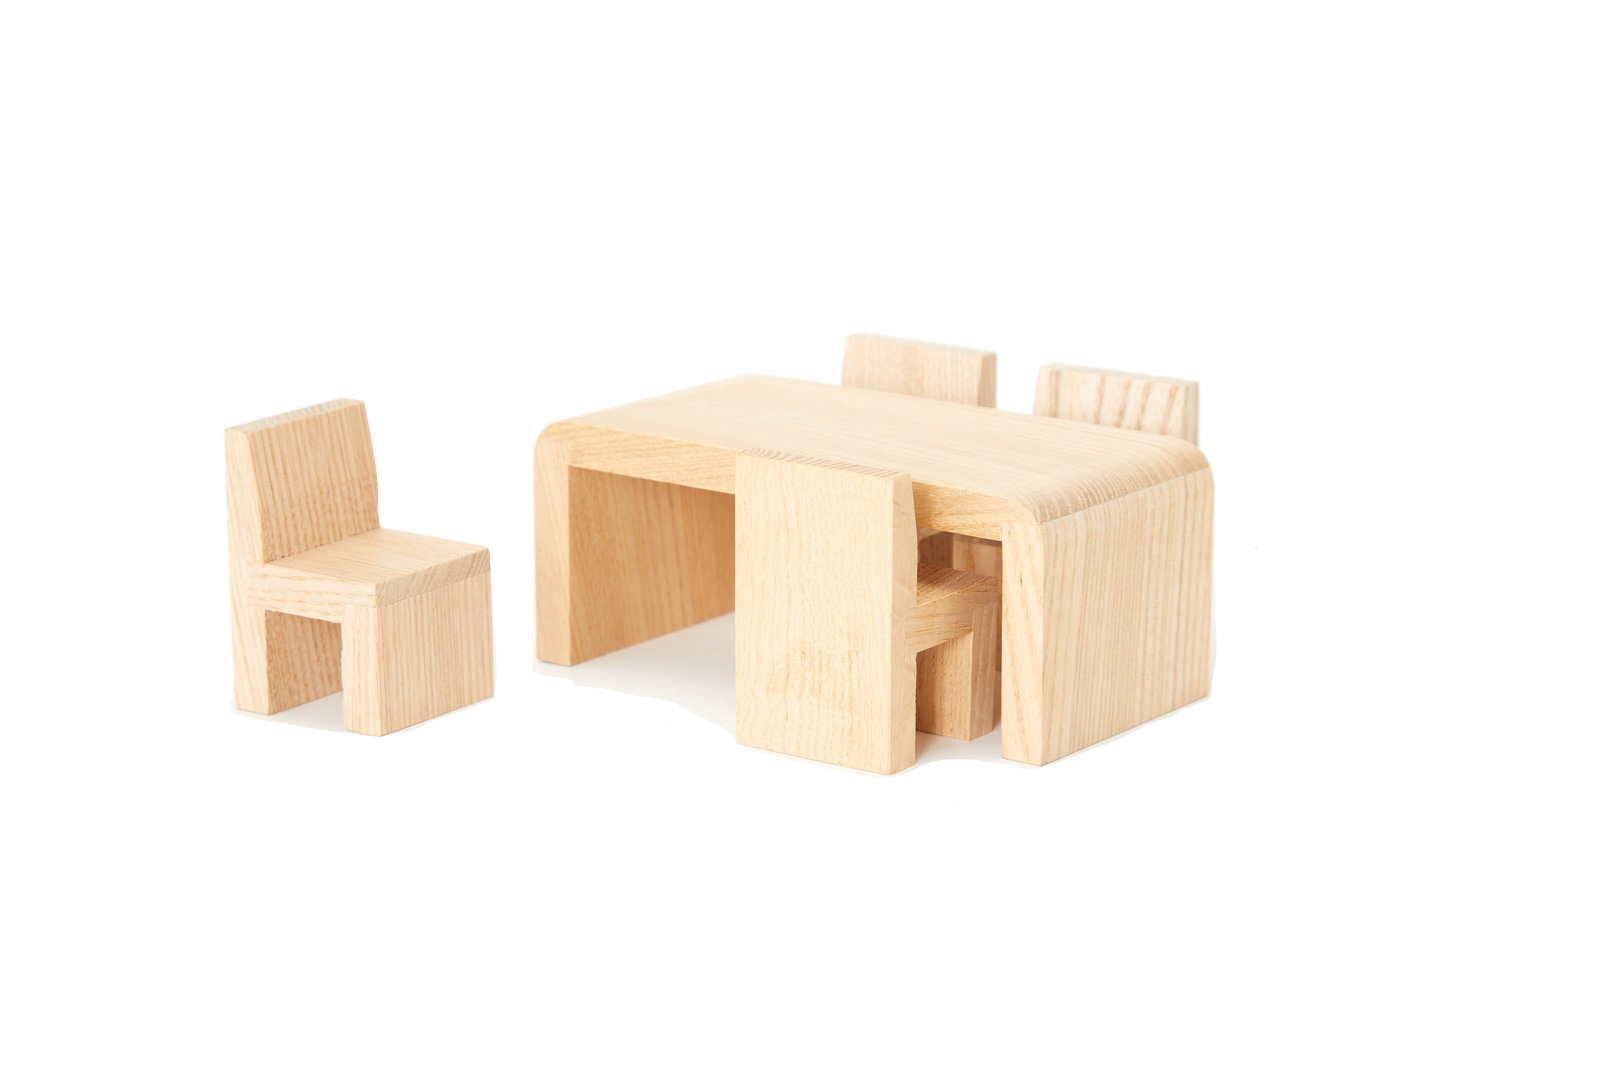 Toy Dining Set: 1 Table + 4 Chairs (All-Natural Wood)